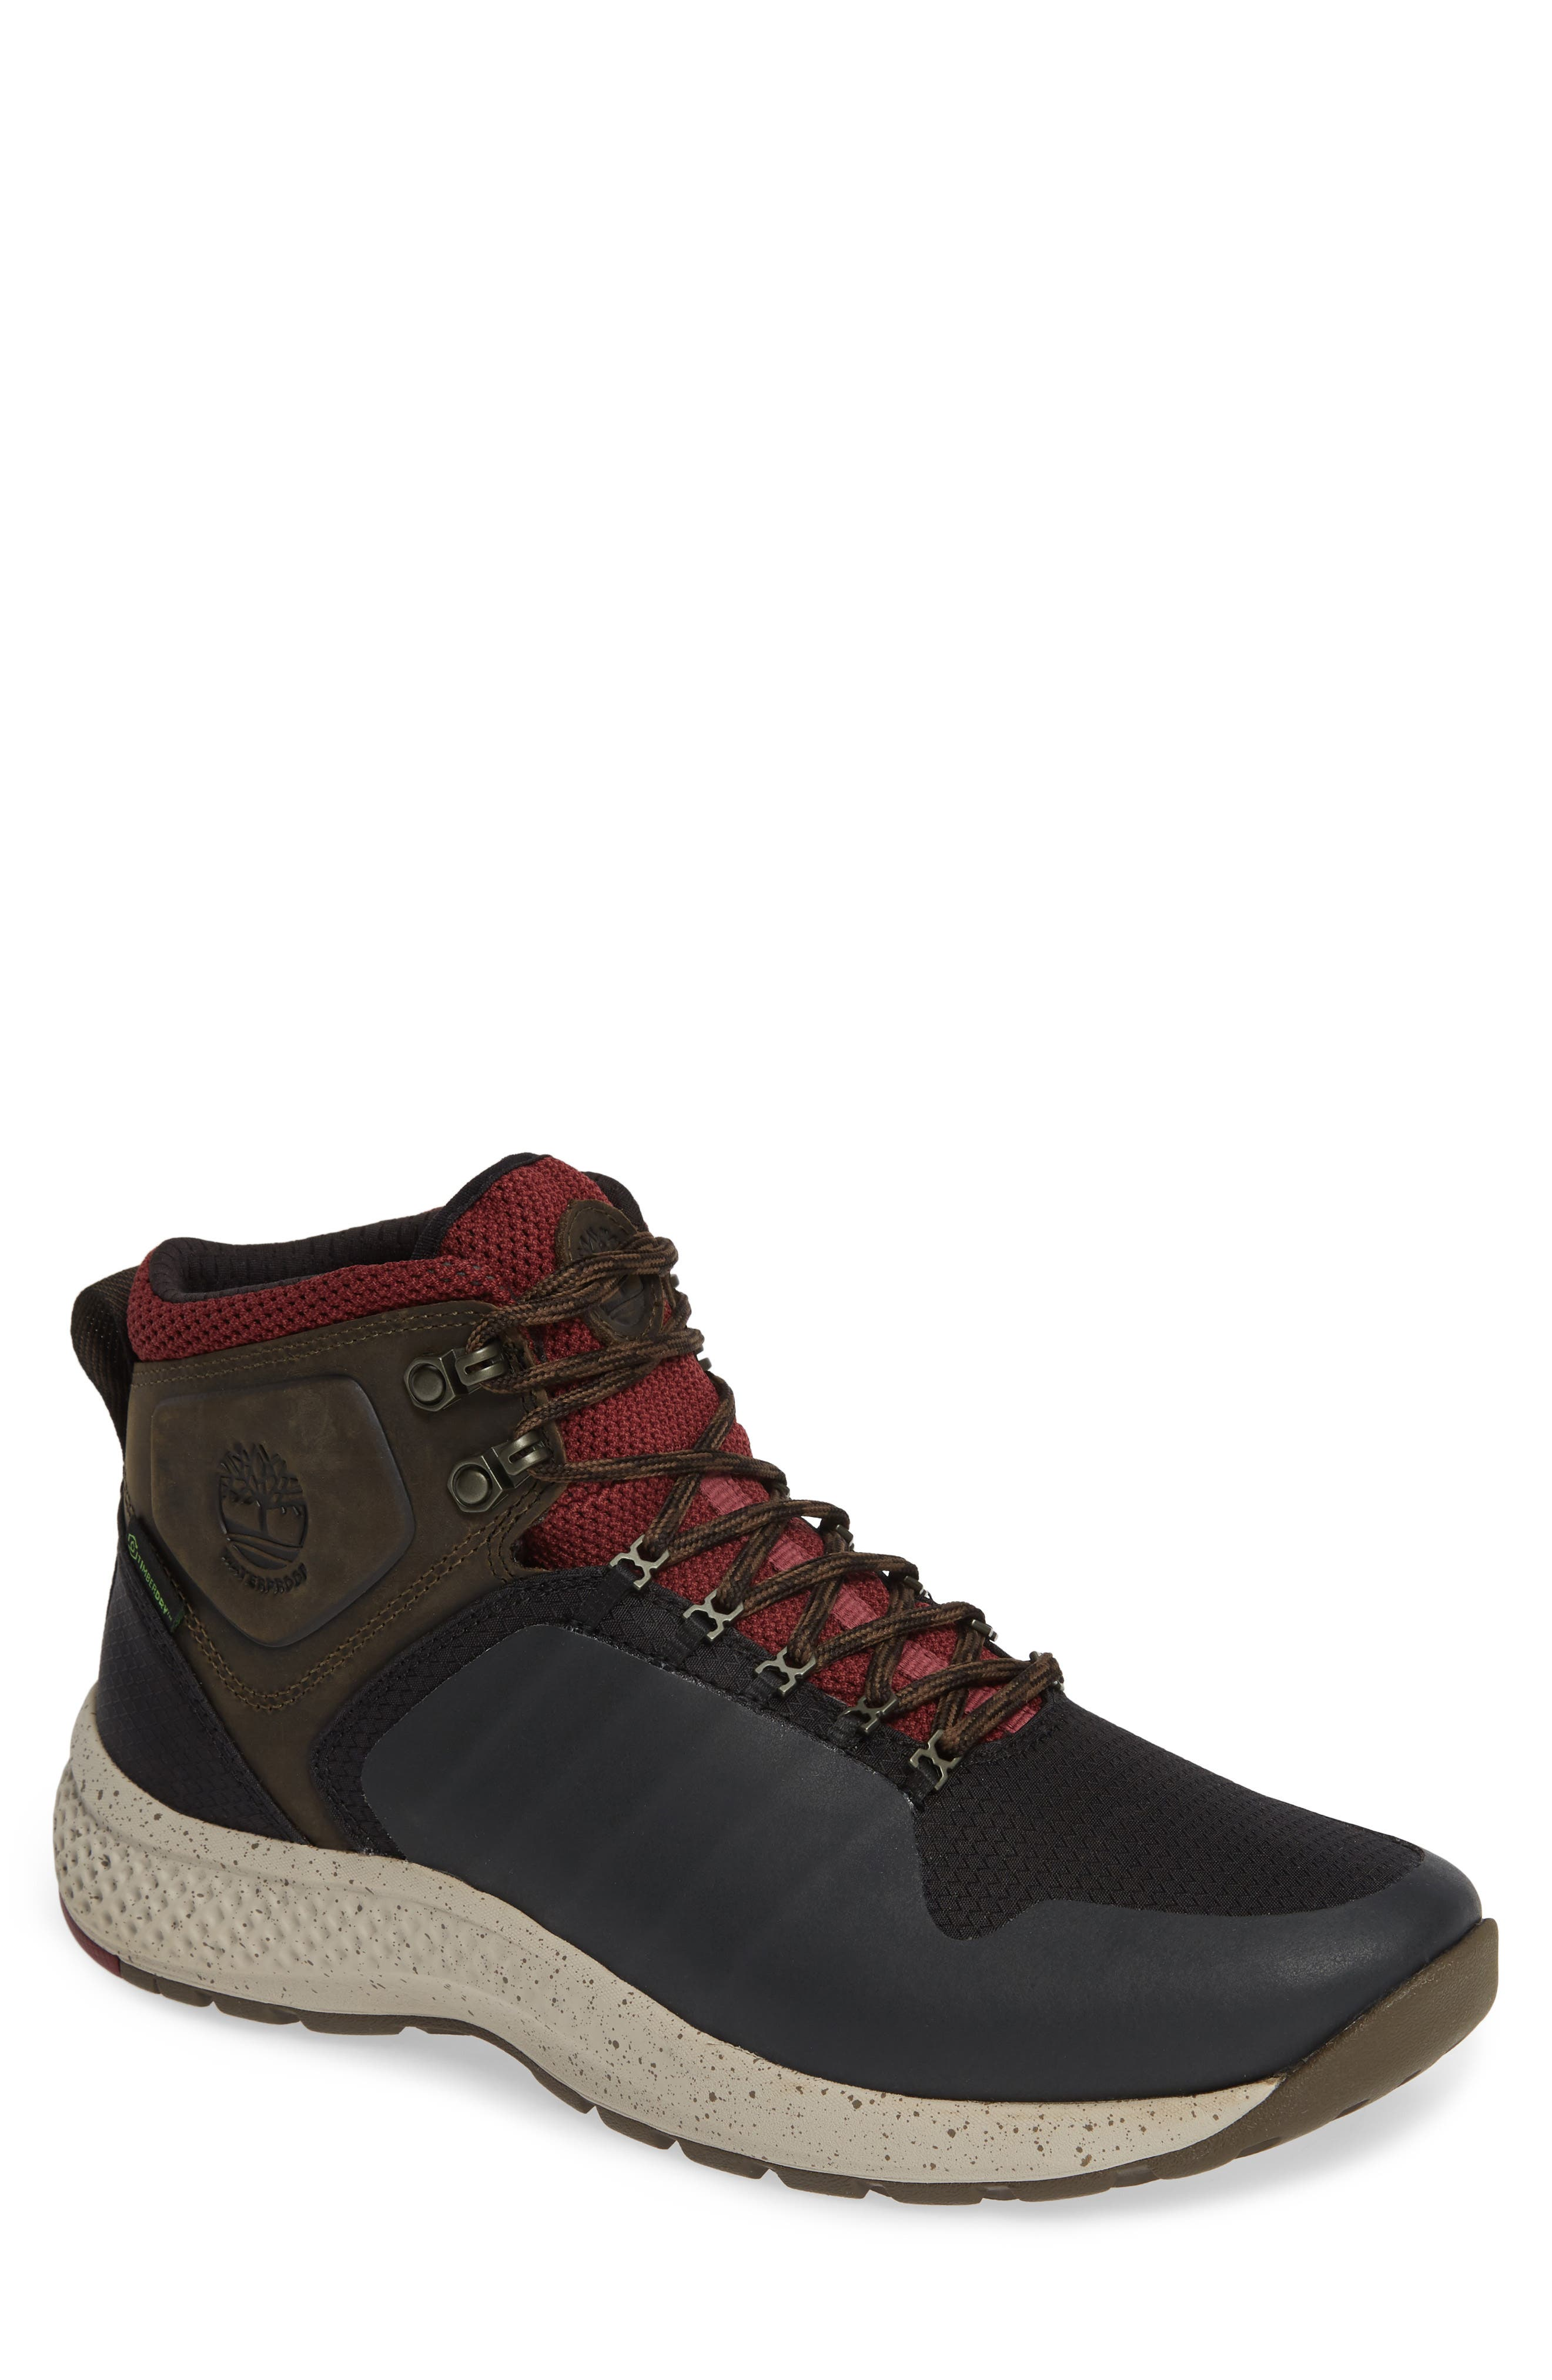 Flyroam Trail Boot,                         Main,                         color, 001